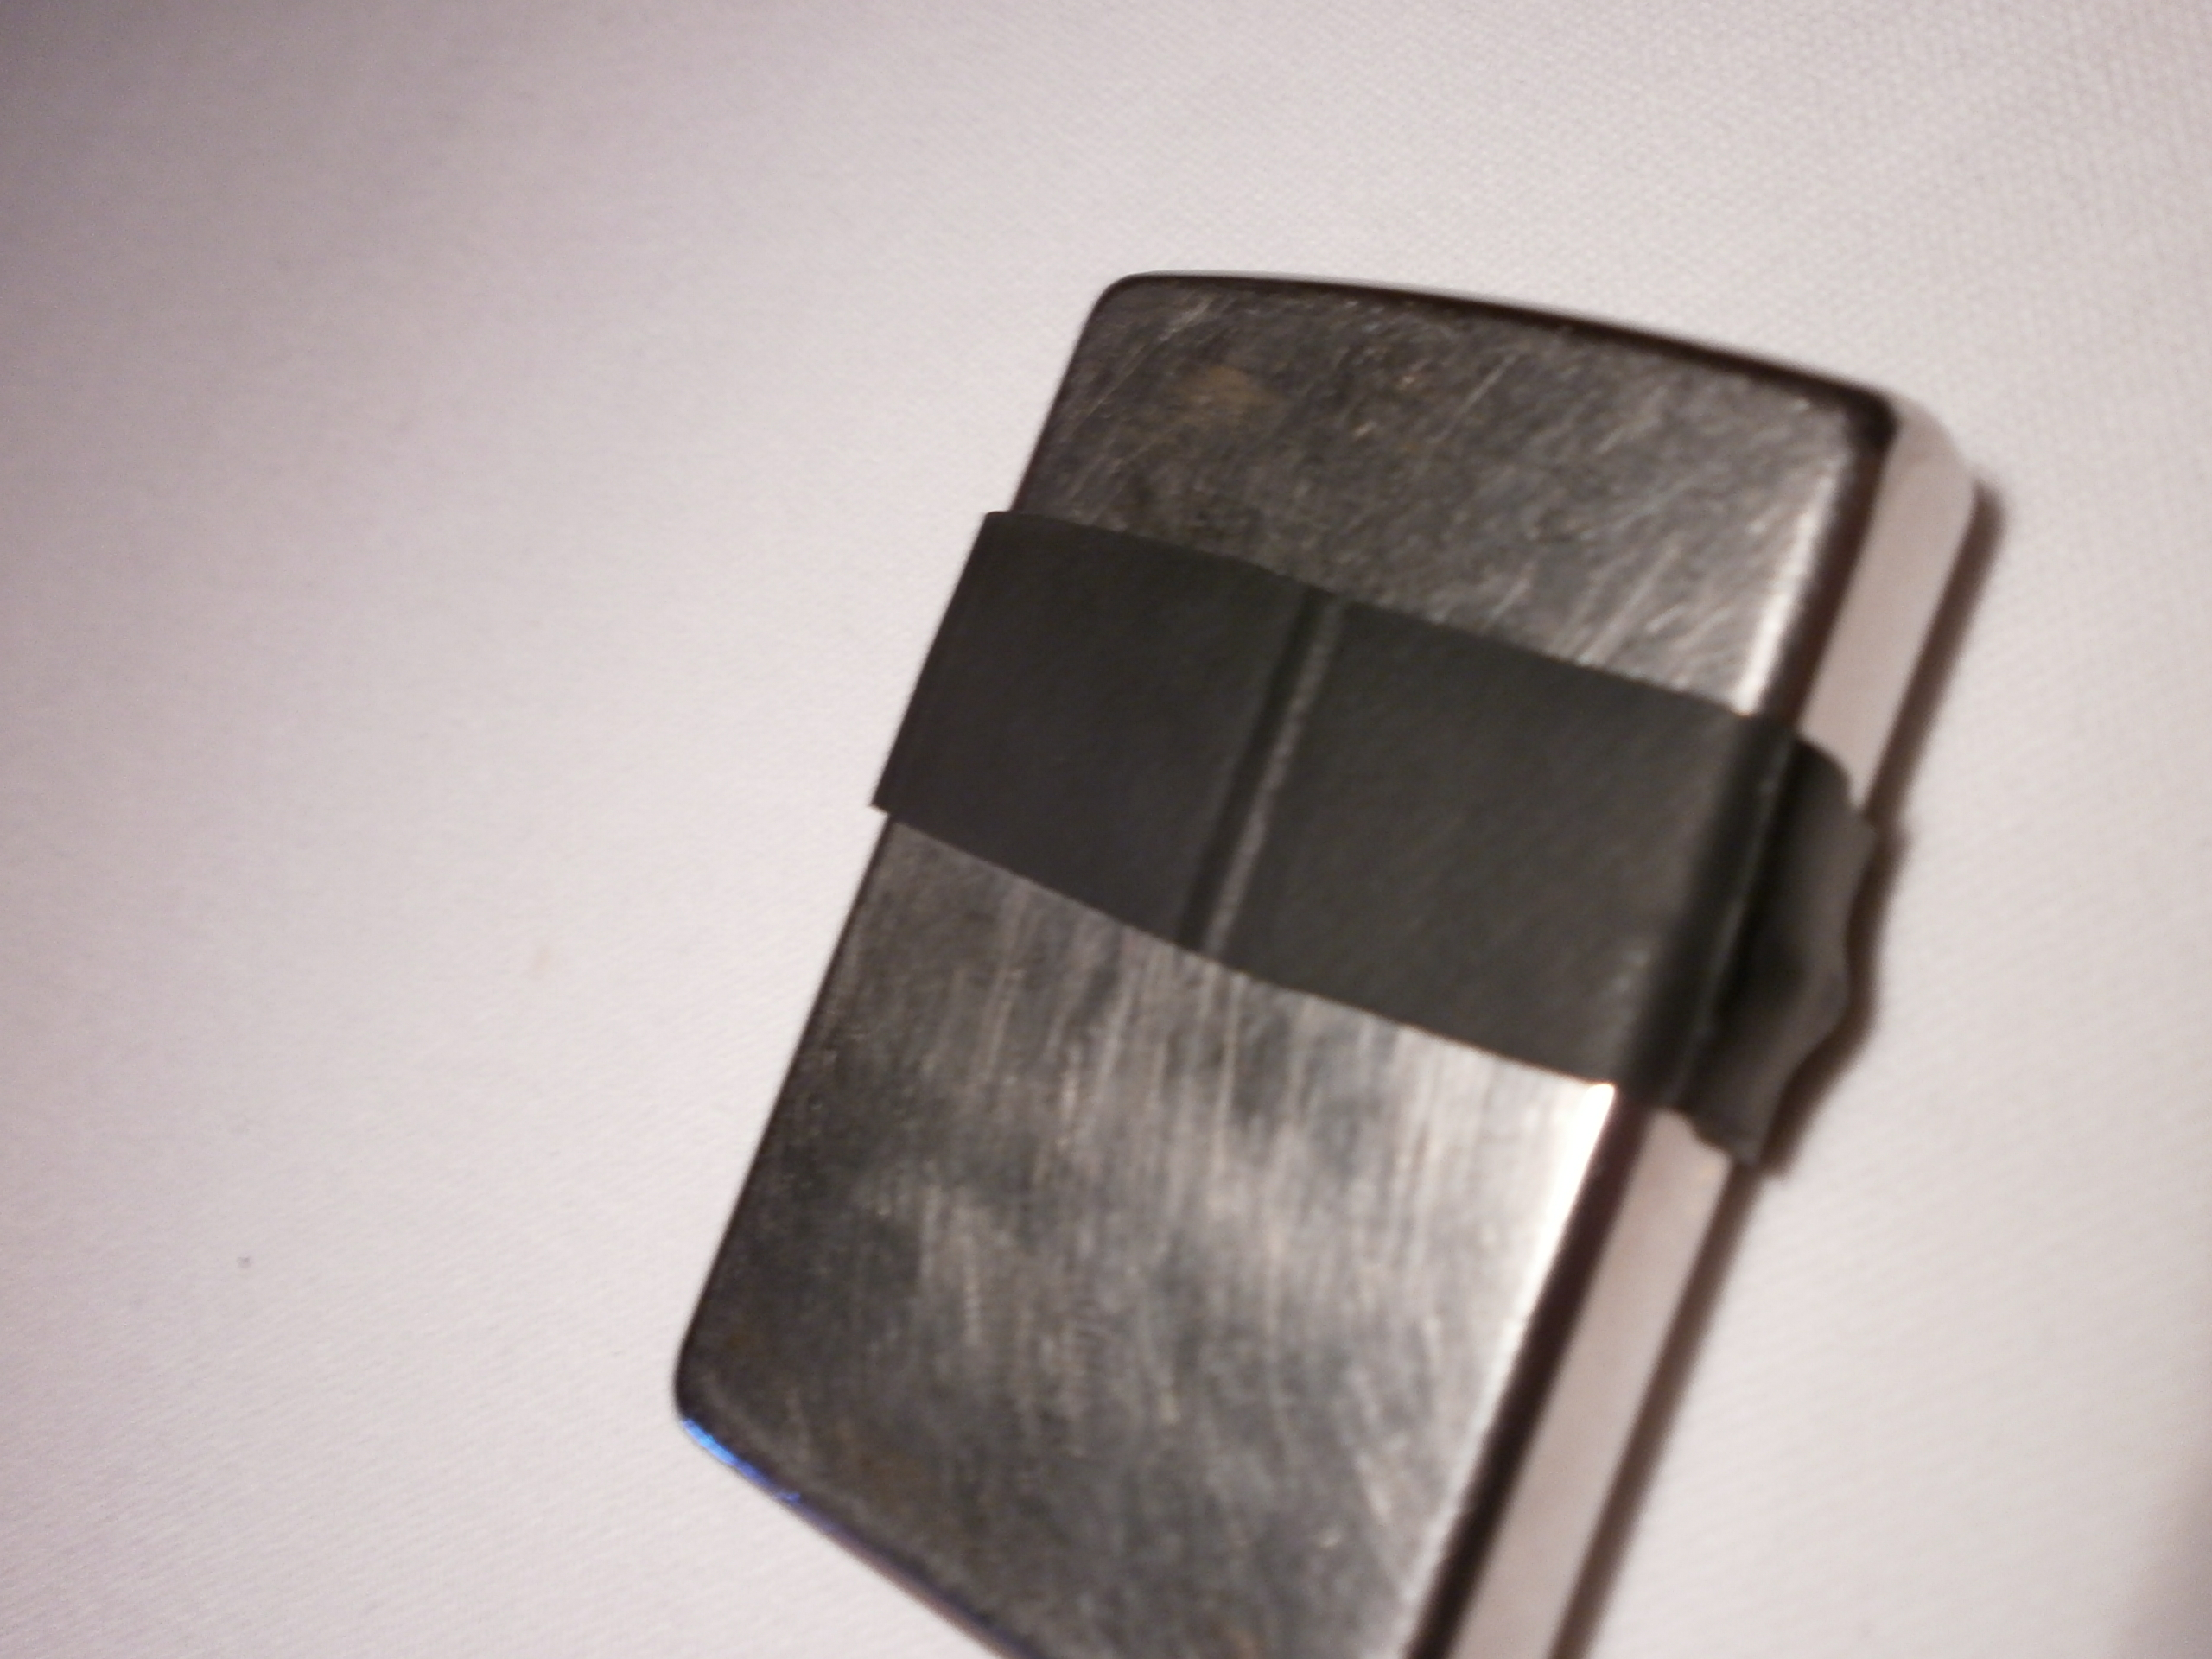 How to prepare your zippo for survival kit